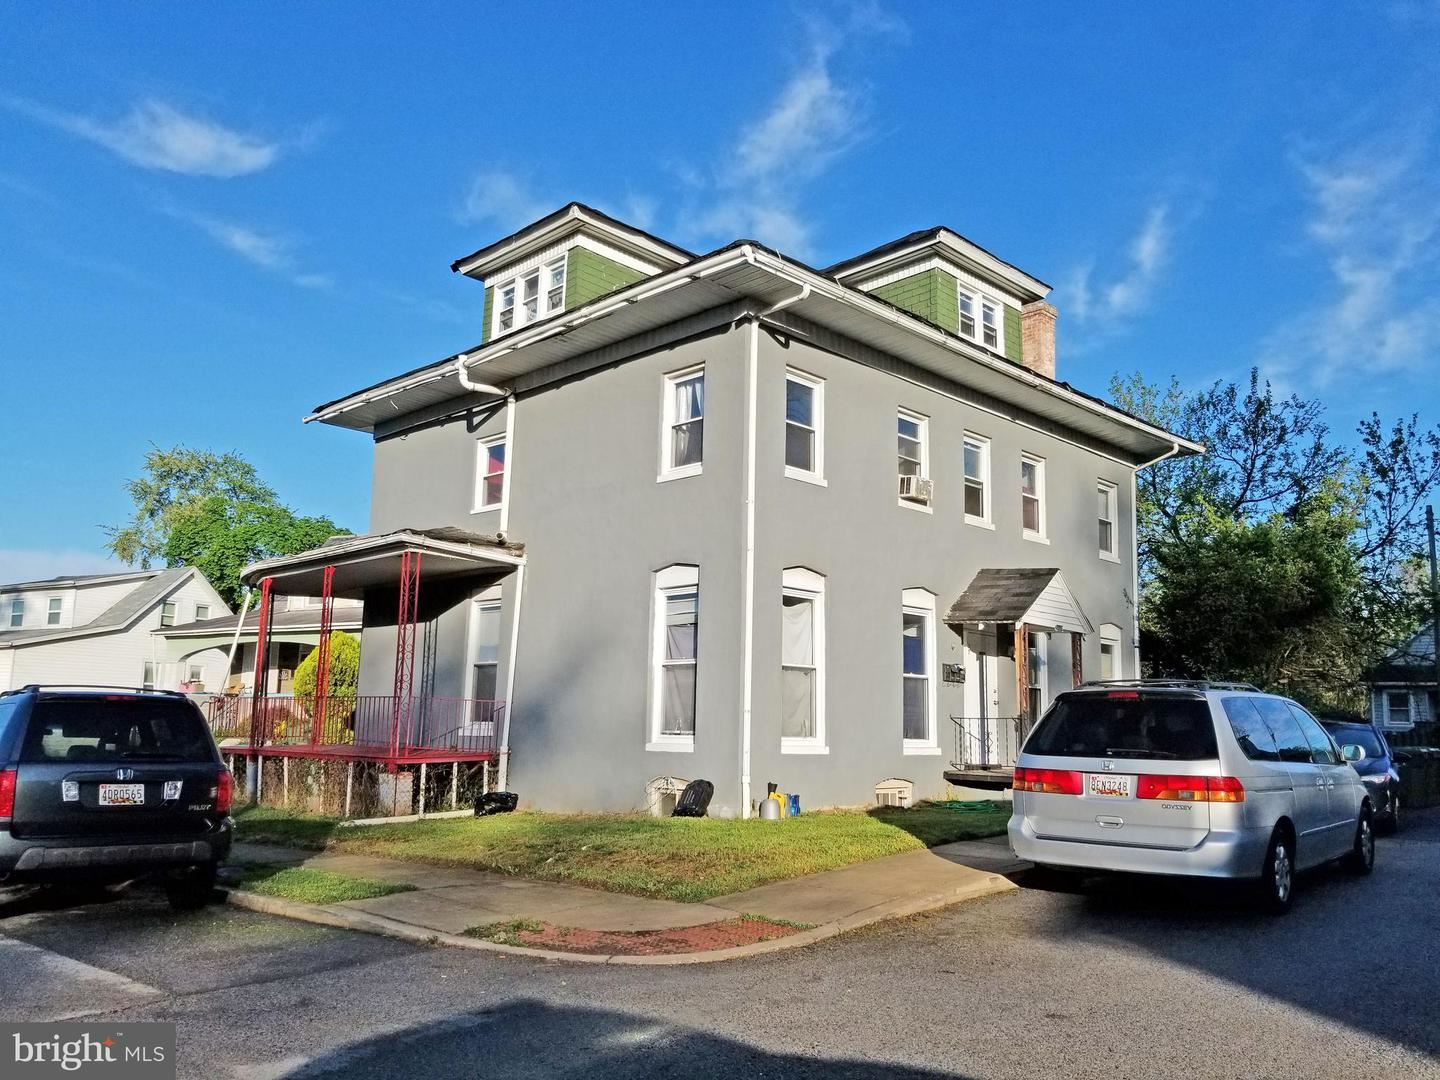 3606 PLATEAU AVE, Baltimore, MD 21207 - MLS#: MDBA548894